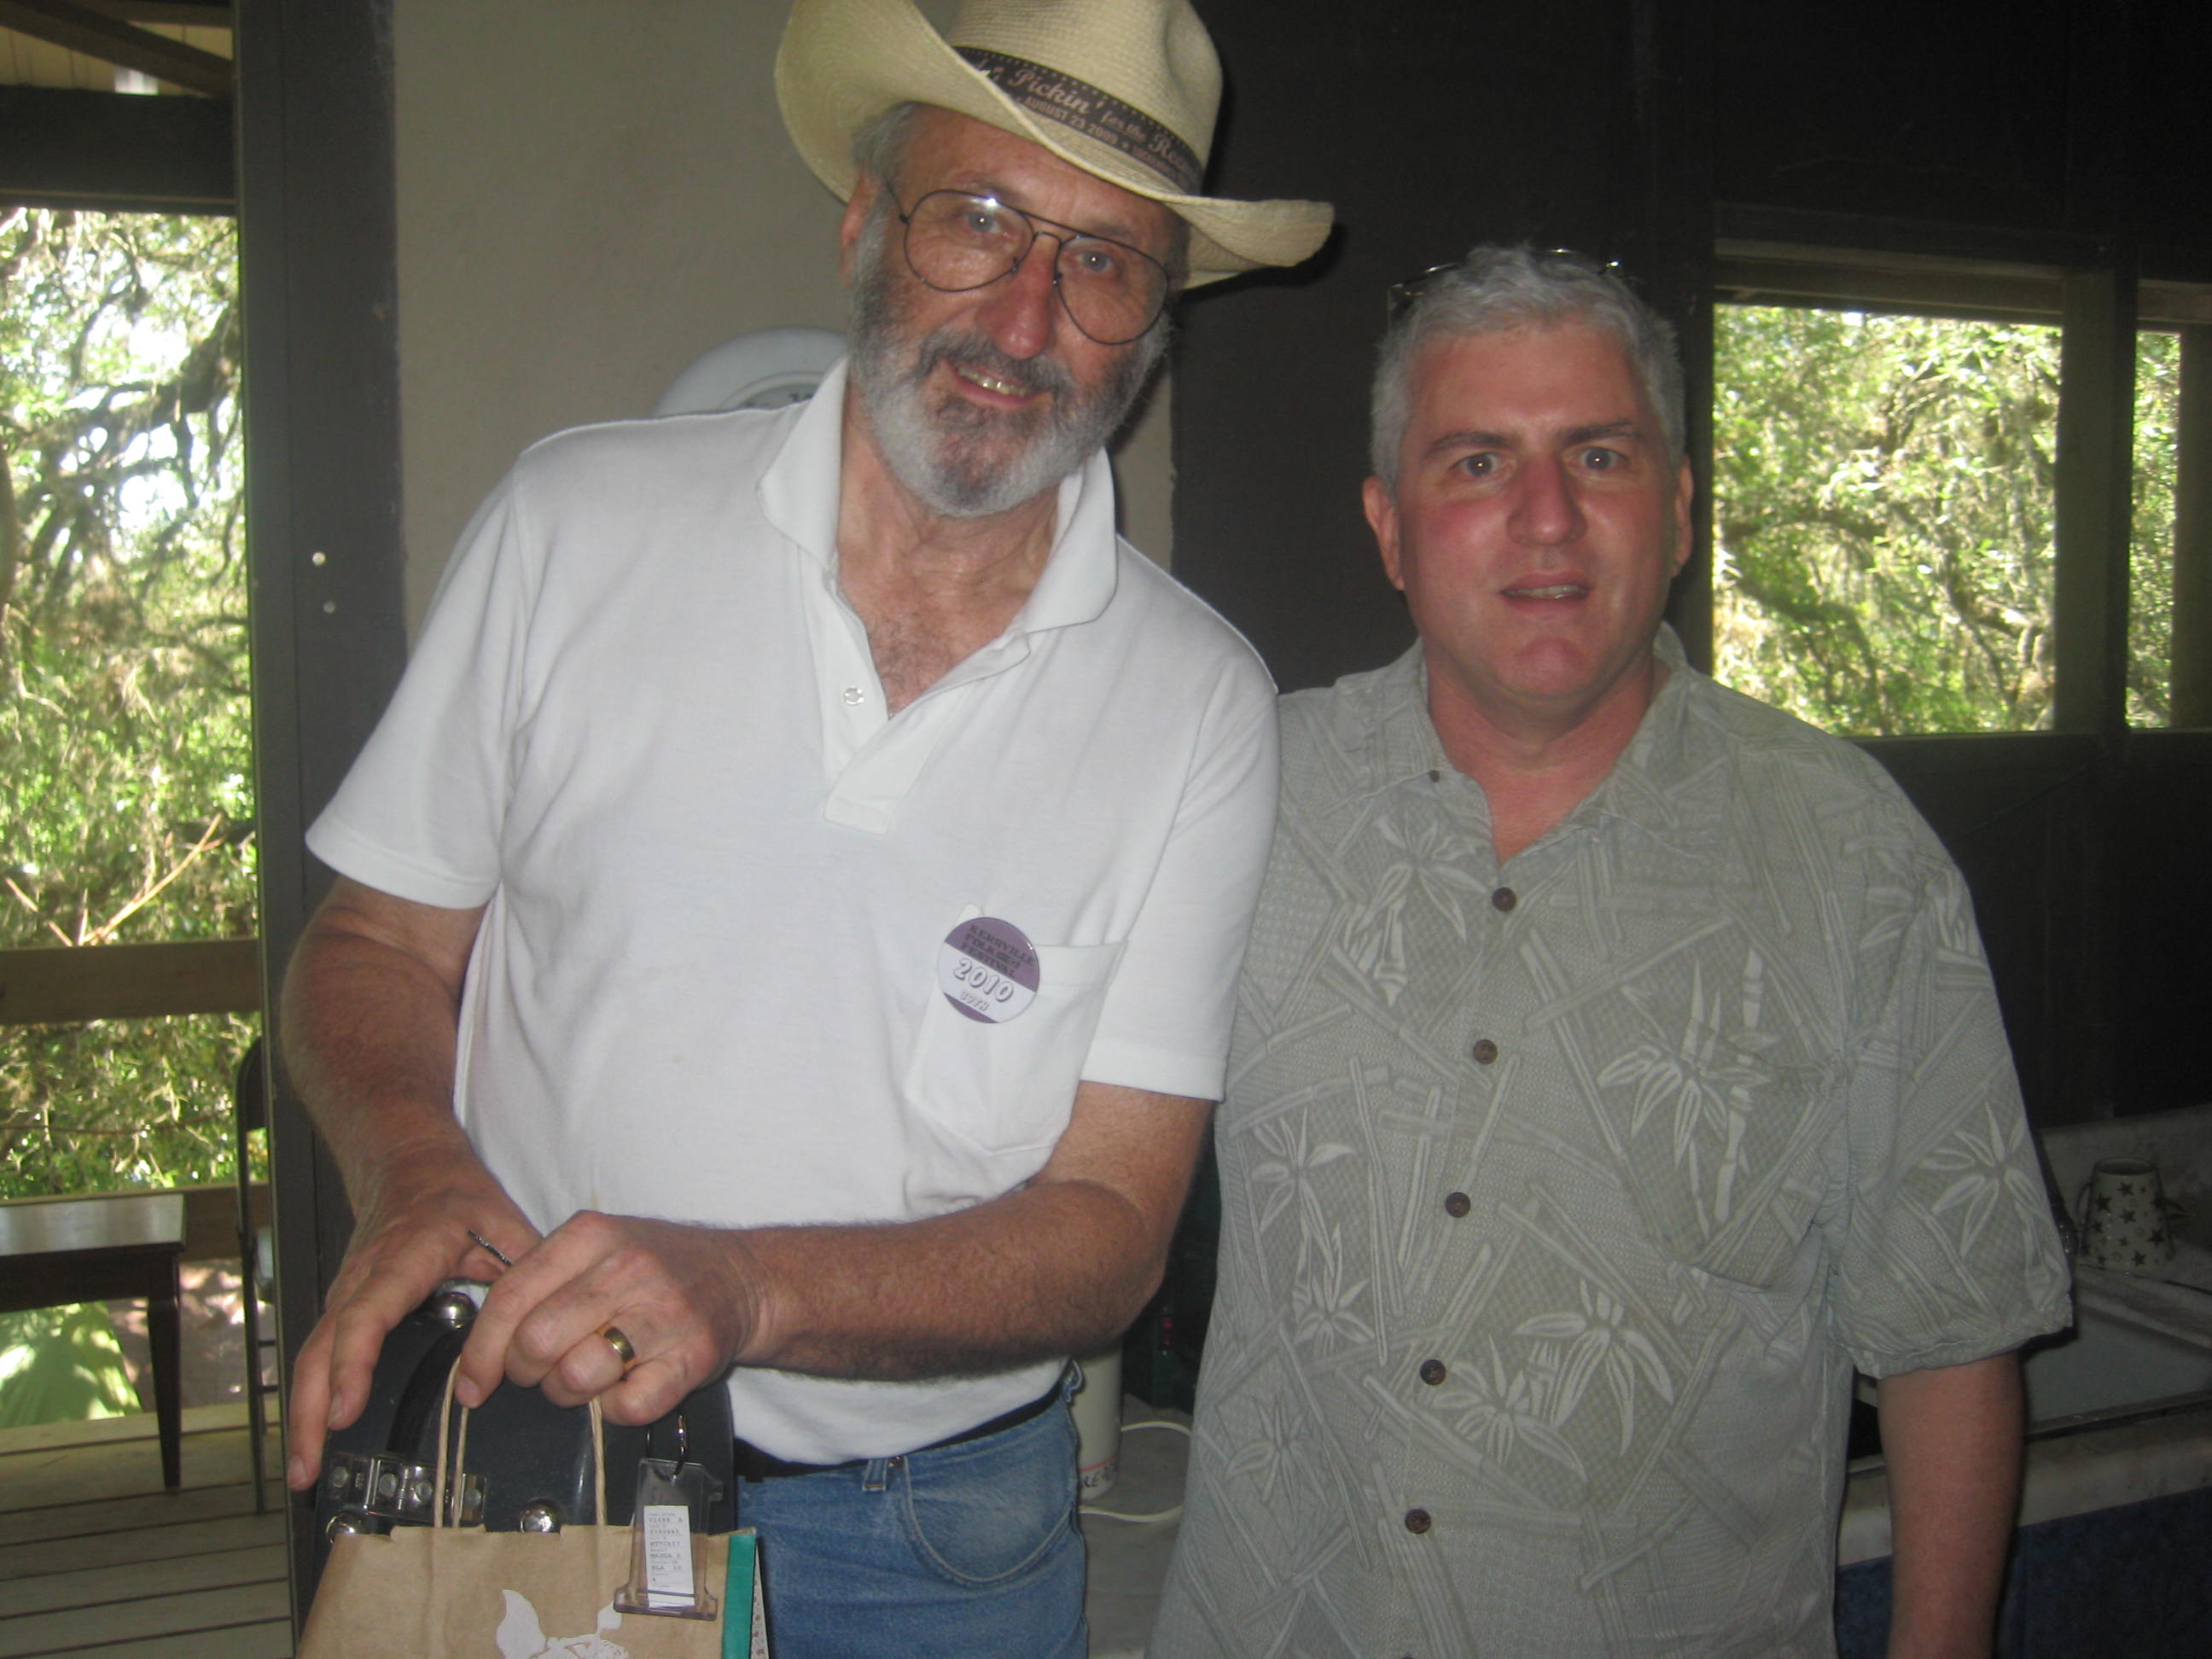 Steve and Noel Paul Stookey backstage at the Threadgill Theatre.